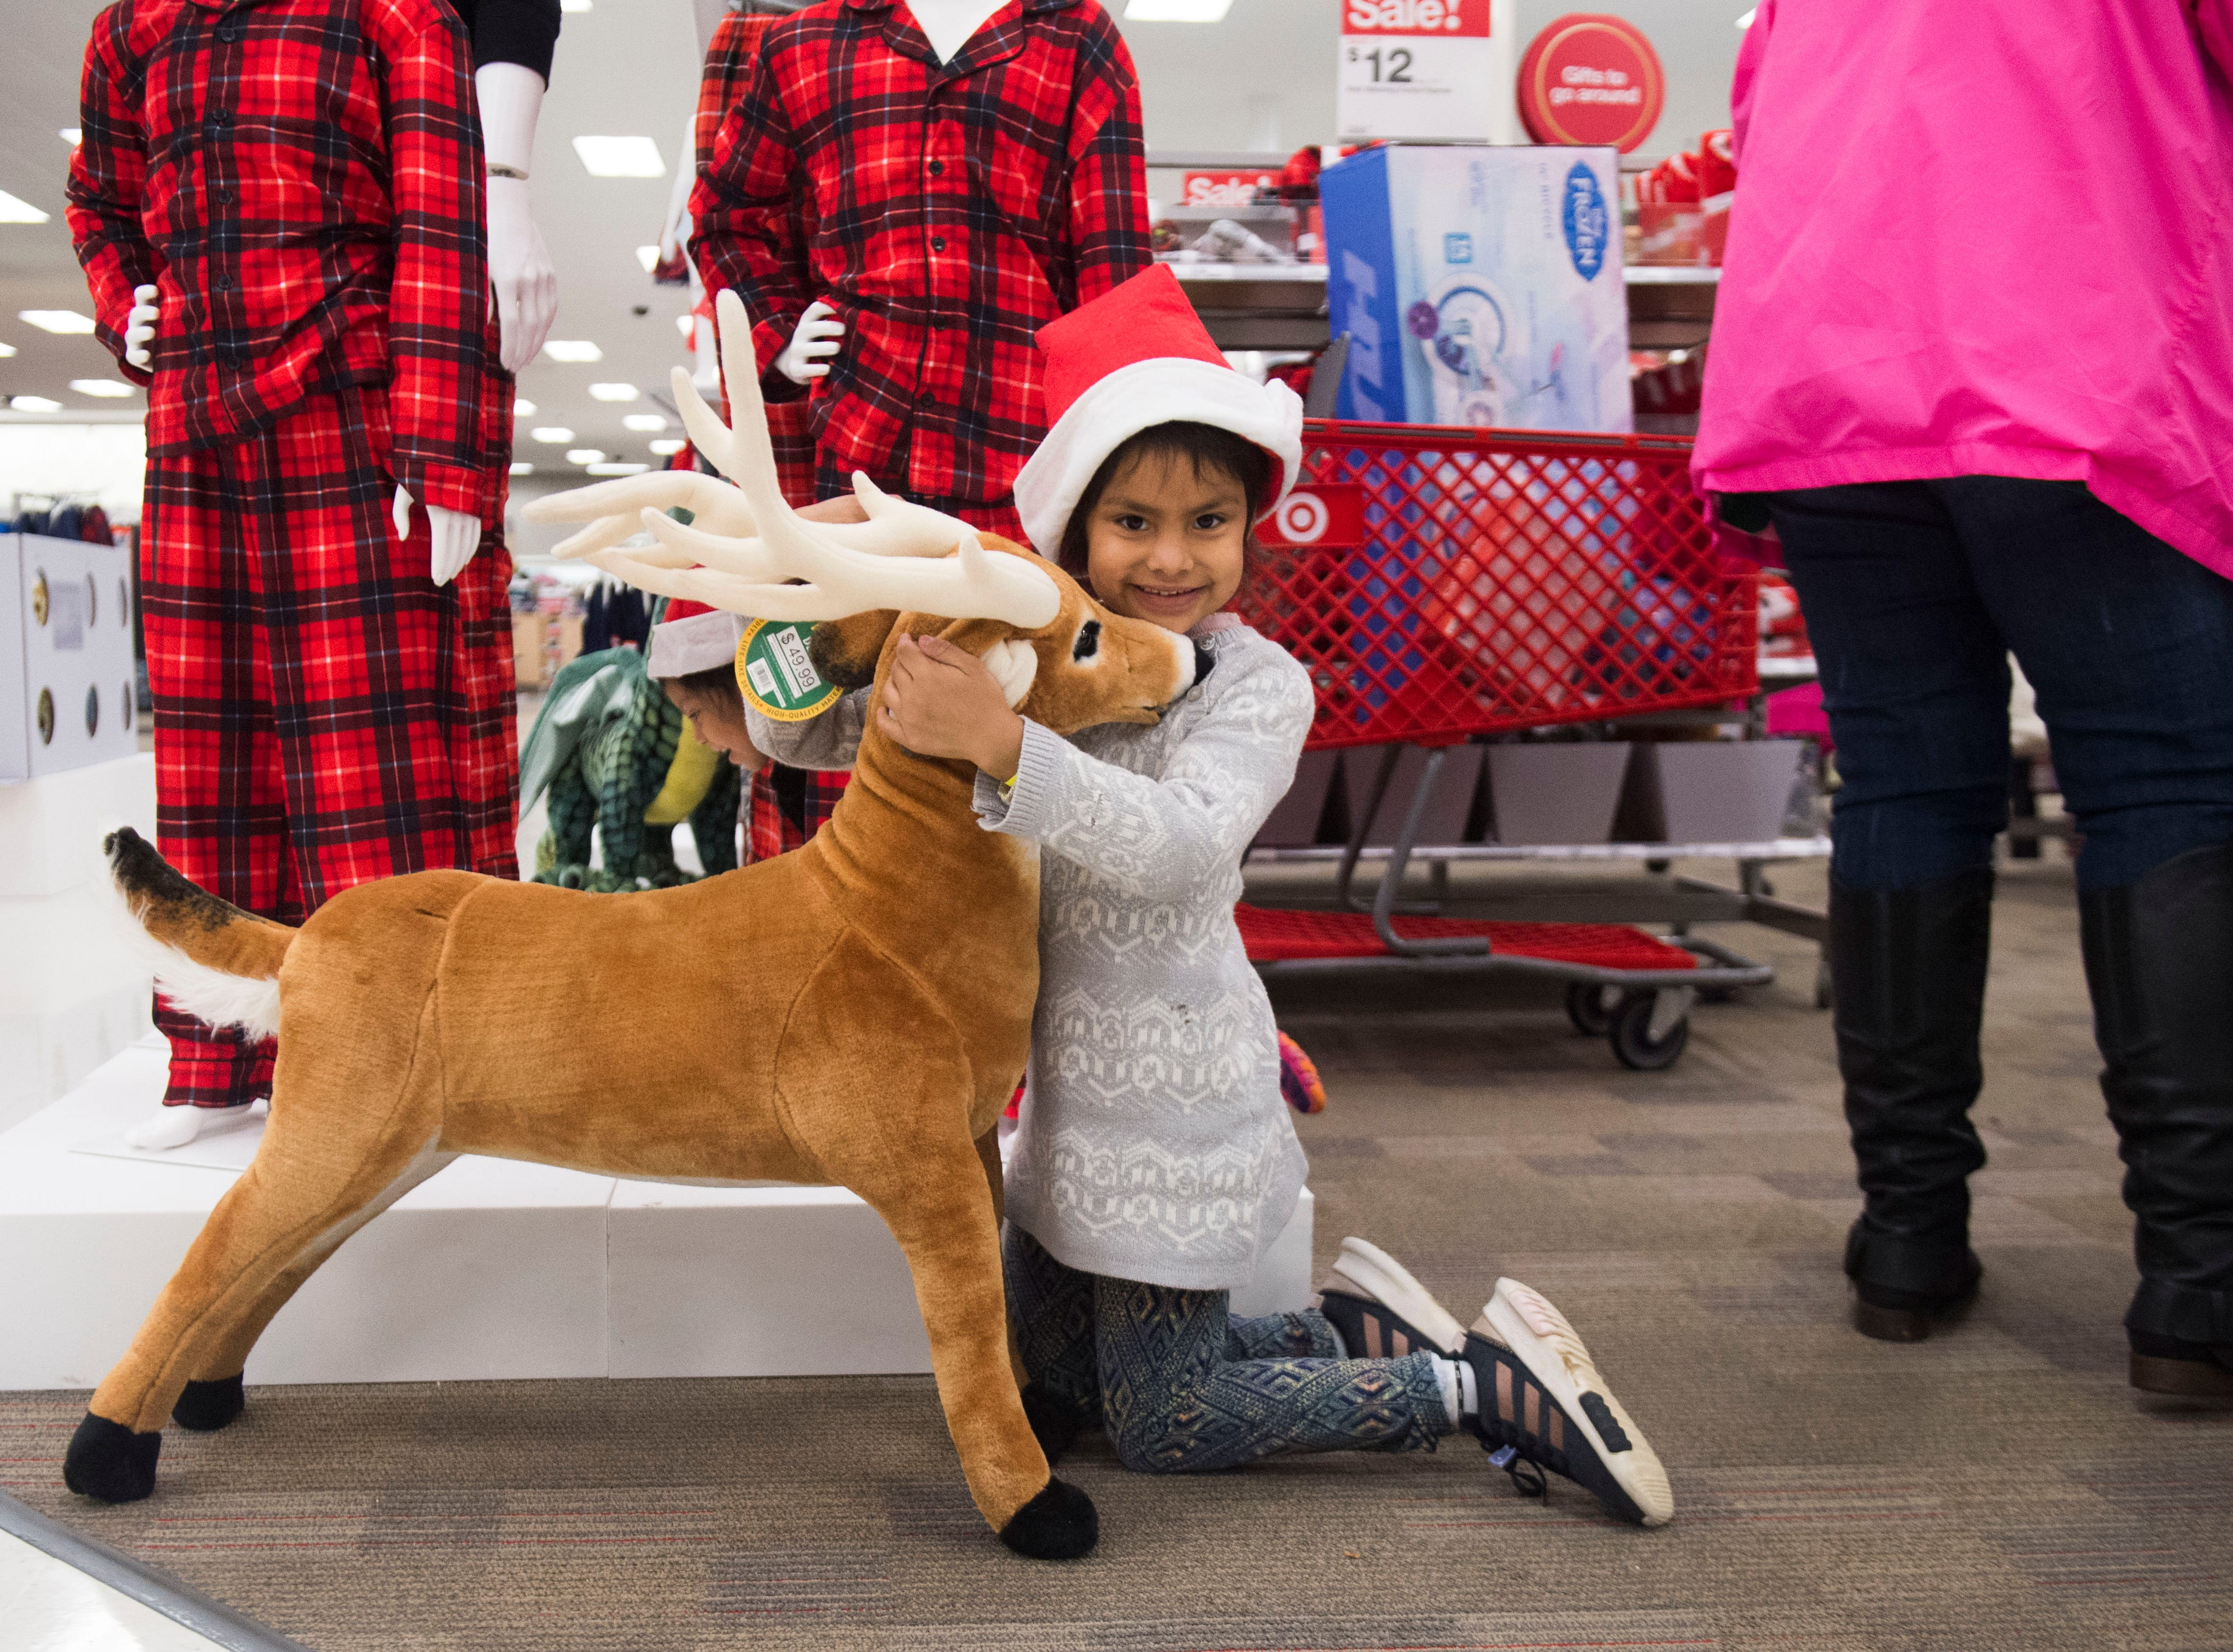 Alondra, 5, poses for a photo with a reindeer at the Target on Clinton Highway during the annual Weigel's Family Christmas Saturday, Dec. 1, 2018. This is the 21st year Weigel's has held the shopping spree for local underprivileged children.